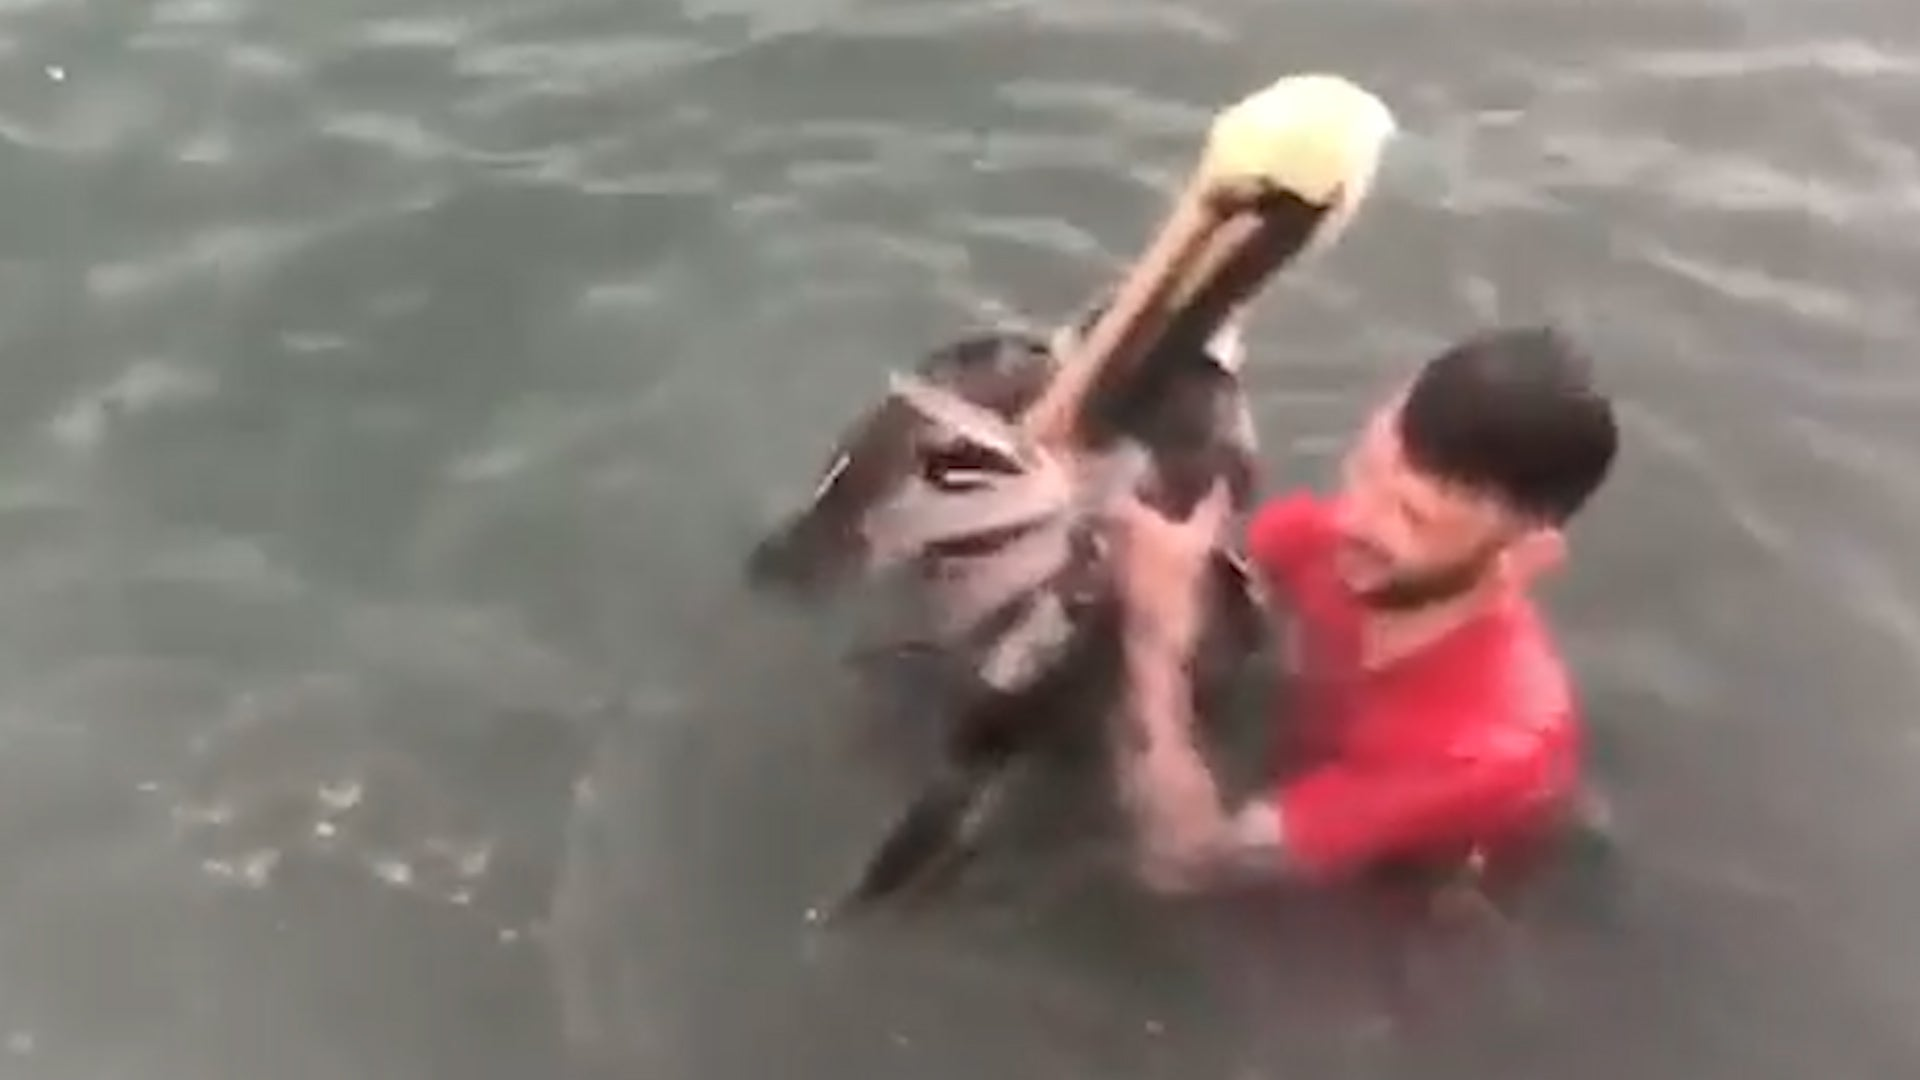 Man Tackles Pelican in Florida Keys, Faces Charges